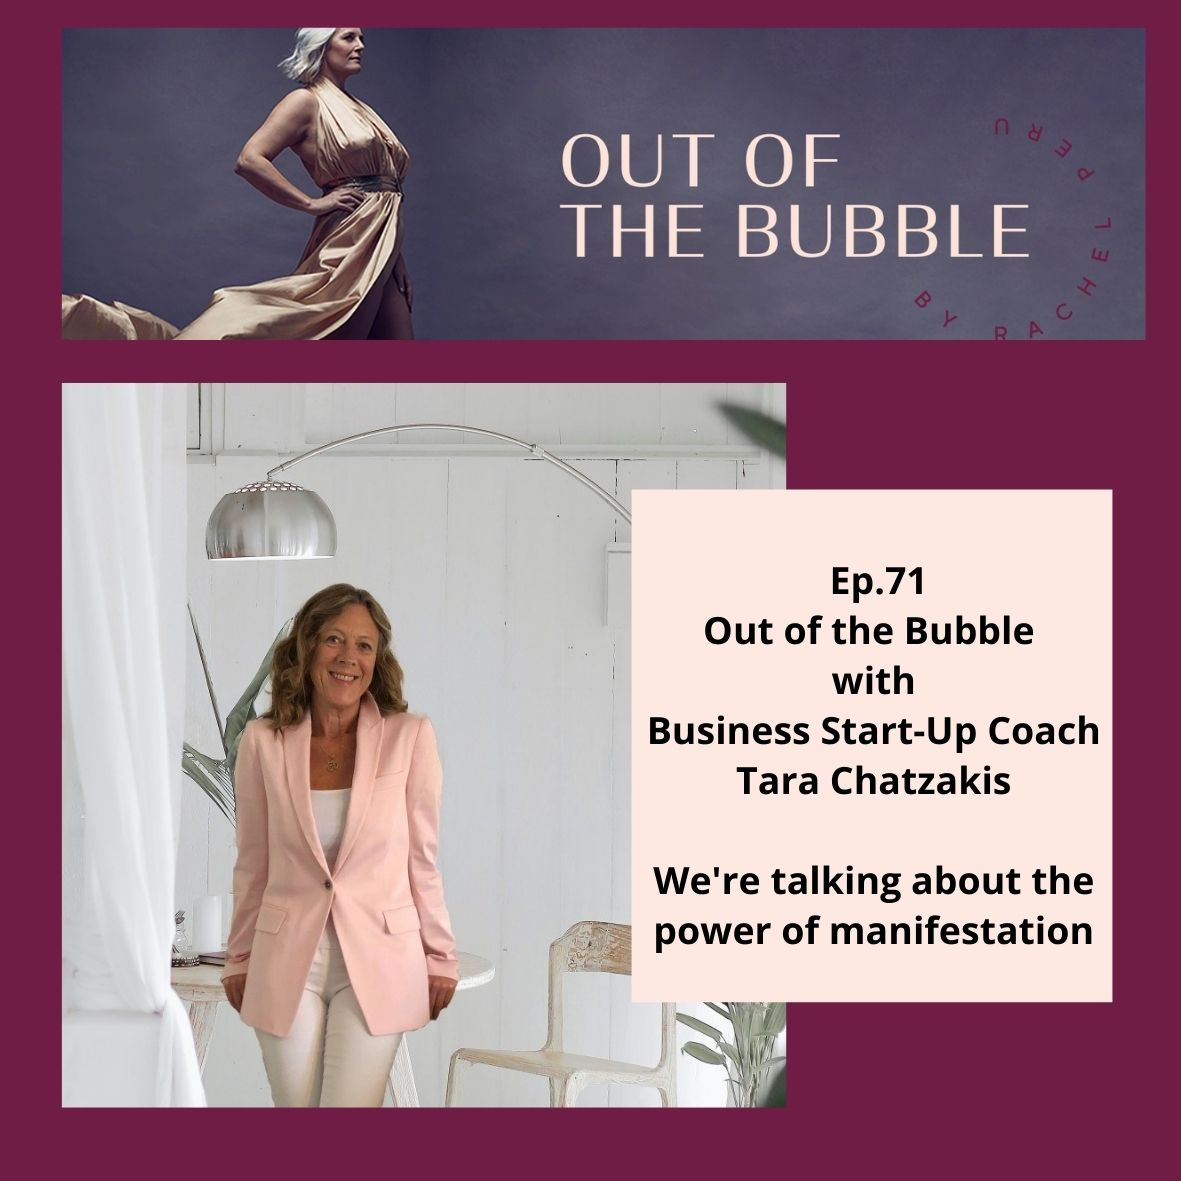 Ep.71 Out of the Bubble with business start-up coach Tara Chatzakis